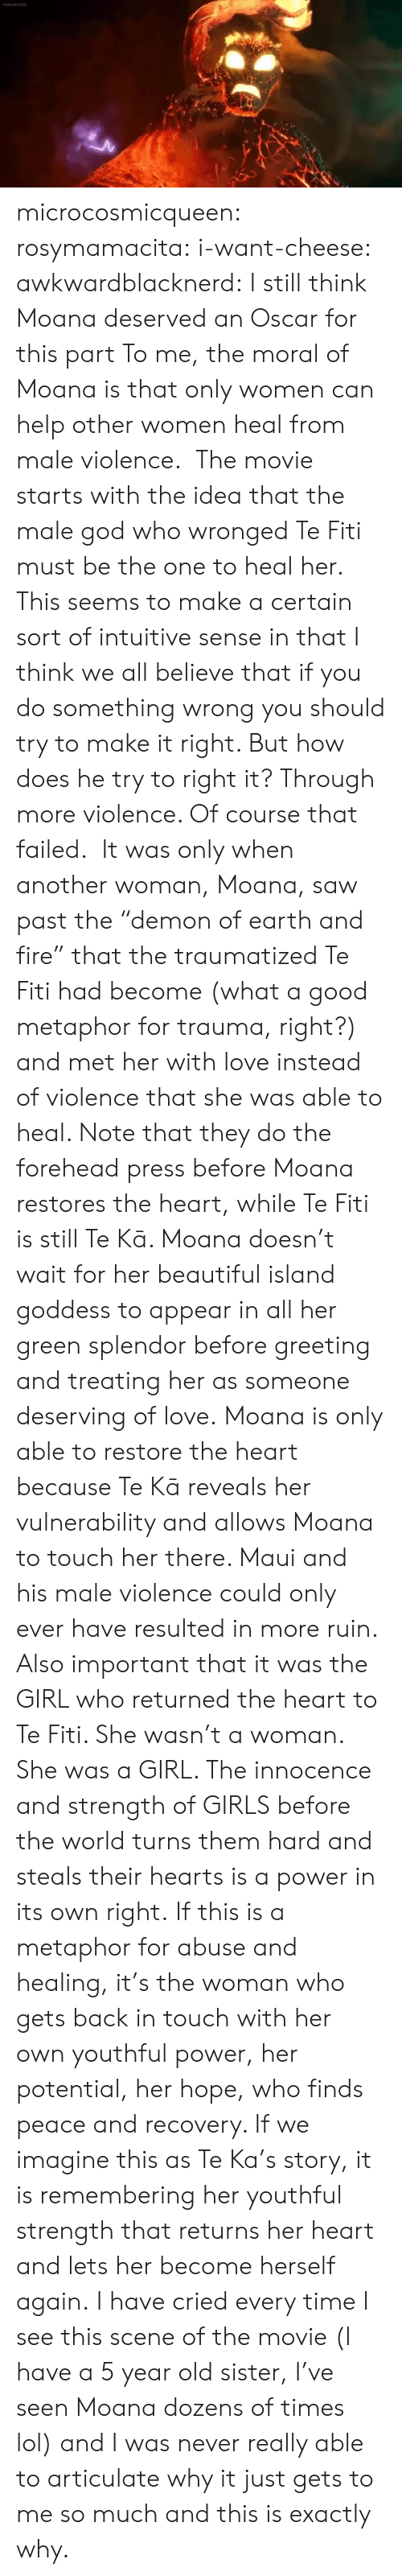 """Beautiful, Fire, and Girls: microcosmicqueen: rosymamacita:  i-want-cheese:  awkwardblacknerd:   I still think Moana deserved an Oscar for this part To me, the moral of Moana is that only women can help other women heal from male violence. The movie starts with the idea that the male god who wronged Te Fiti must be the one to heal her. This seems to make a certain sort of intuitive sense in that I think we all believe that if you do something wrong you should try to make it right. But how does he try to right it? Through more violence. Of coursethat failed. It was only when another woman, Moana, saw past the""""demon of earth and fire"""" that the traumatized Te Fiti had become (what a good metaphor for trauma, right?) and met her with love instead of violence that she was able to heal. Note that they do the forehead press beforeMoana restores the heart, while Te Fiti is still Te Kā. Moana doesn't wait for her beautiful island goddess to appear in all her green splendor before greeting and treating her as someone deserving of love. Moana is only able to restore the heart because Te Kā reveals her vulnerability and allows Moana to touch her there. Maui and his male violence could only ever have resulted in more ruin.  Also important that it was the GIRL who returned the heart to Te Fiti. She wasn't a woman. She was a GIRL. The innocence and strength of GIRLS before the world turns them hard and steals their hearts is a power in its own right. If this is a metaphor for abuse and healing, it's the woman who gets back in touch with her own youthful power, her potential, her hope, who finds peace and recovery. If we imagine this as Te Ka's story, it is remembering her youthful strength that returns her heart and lets her become herself again.   I have cried every time I see this scene of the movie (I have a 5 year old sister, I've seen Moana dozens of times lol) and I was never really able to articulate why it just gets to me so much and this is exactly why."""